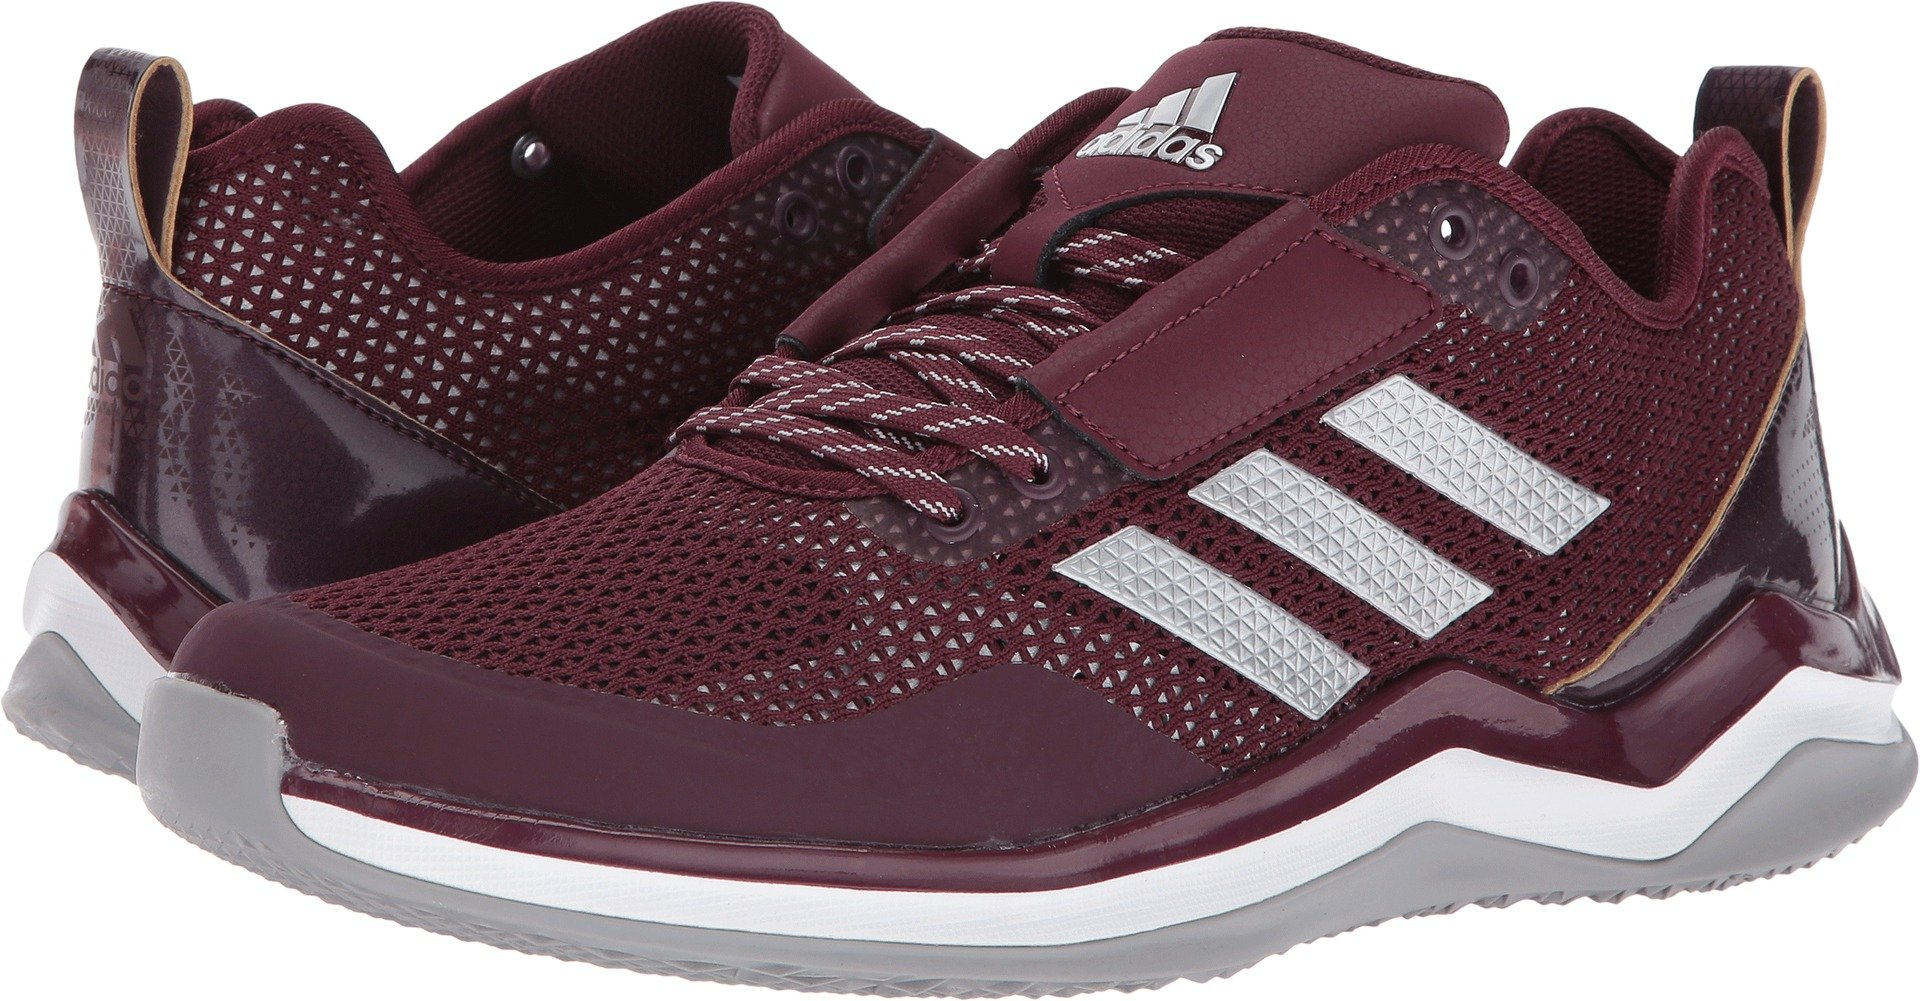 adidas  Men's Speed Trainer 3.0 Maroon/Silver/White 9 D US by adidas